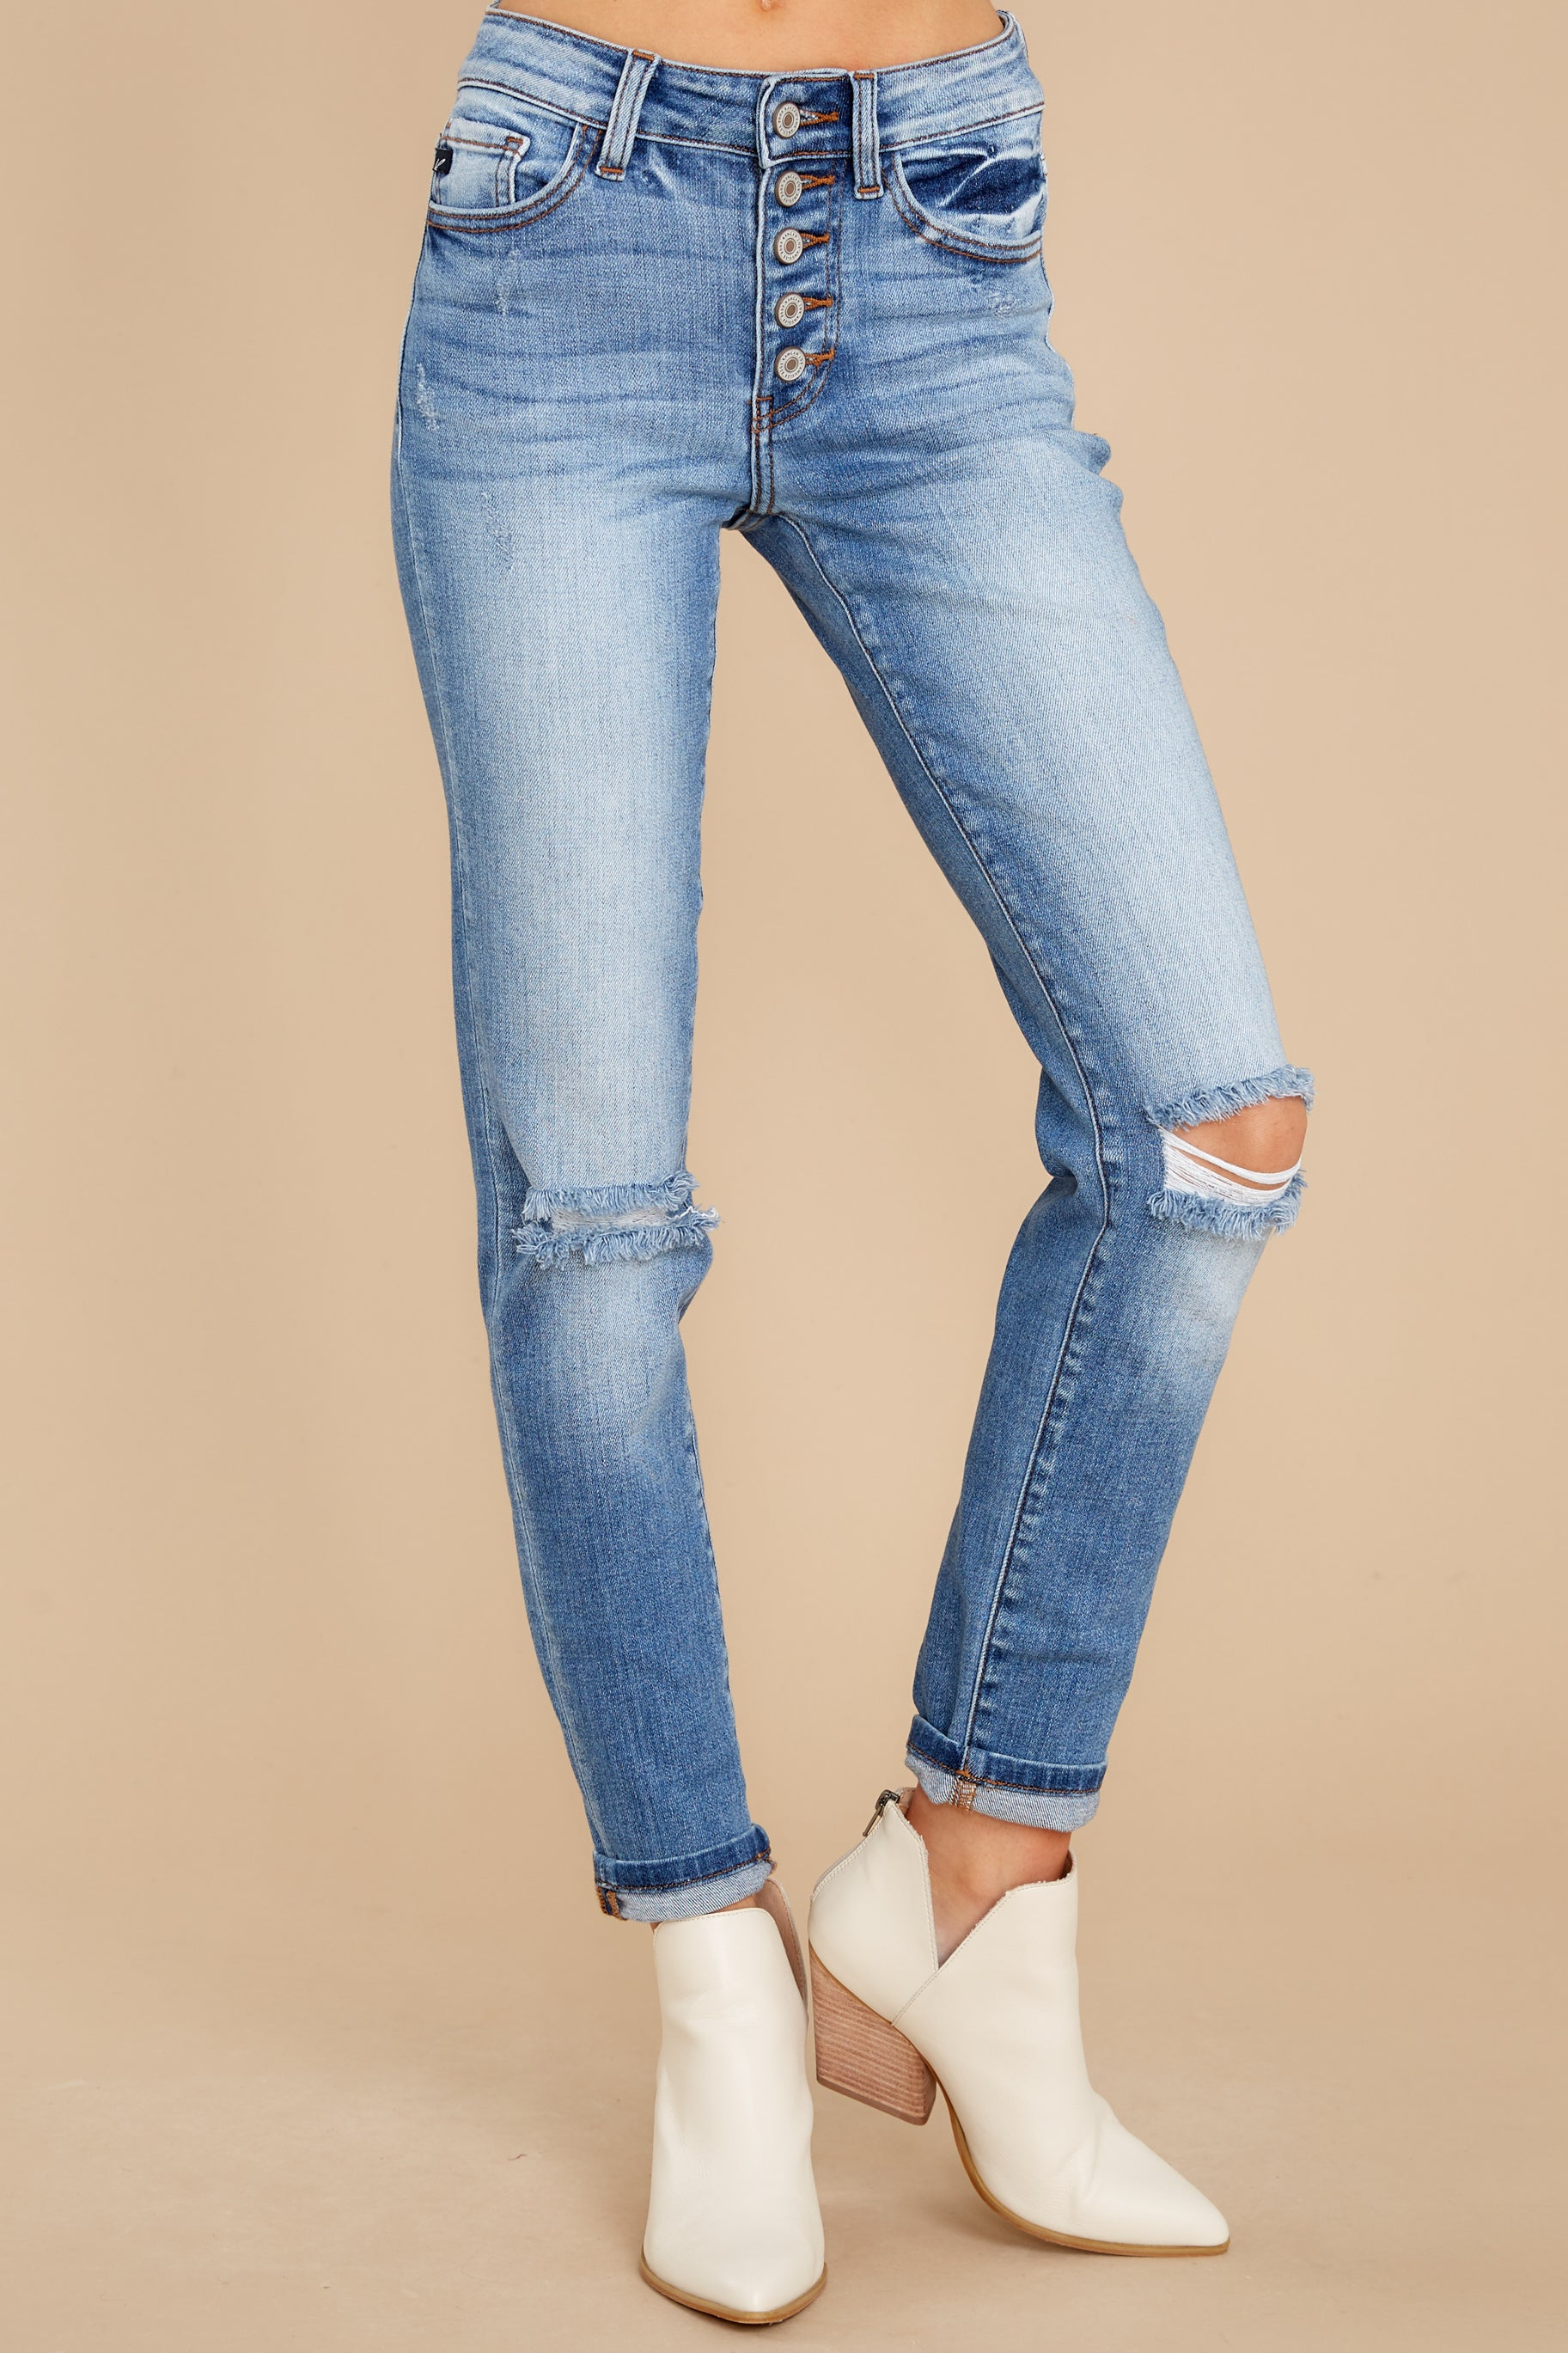 2 Look This Way Light Wash Distressed Skinny Jeans at reddress.com